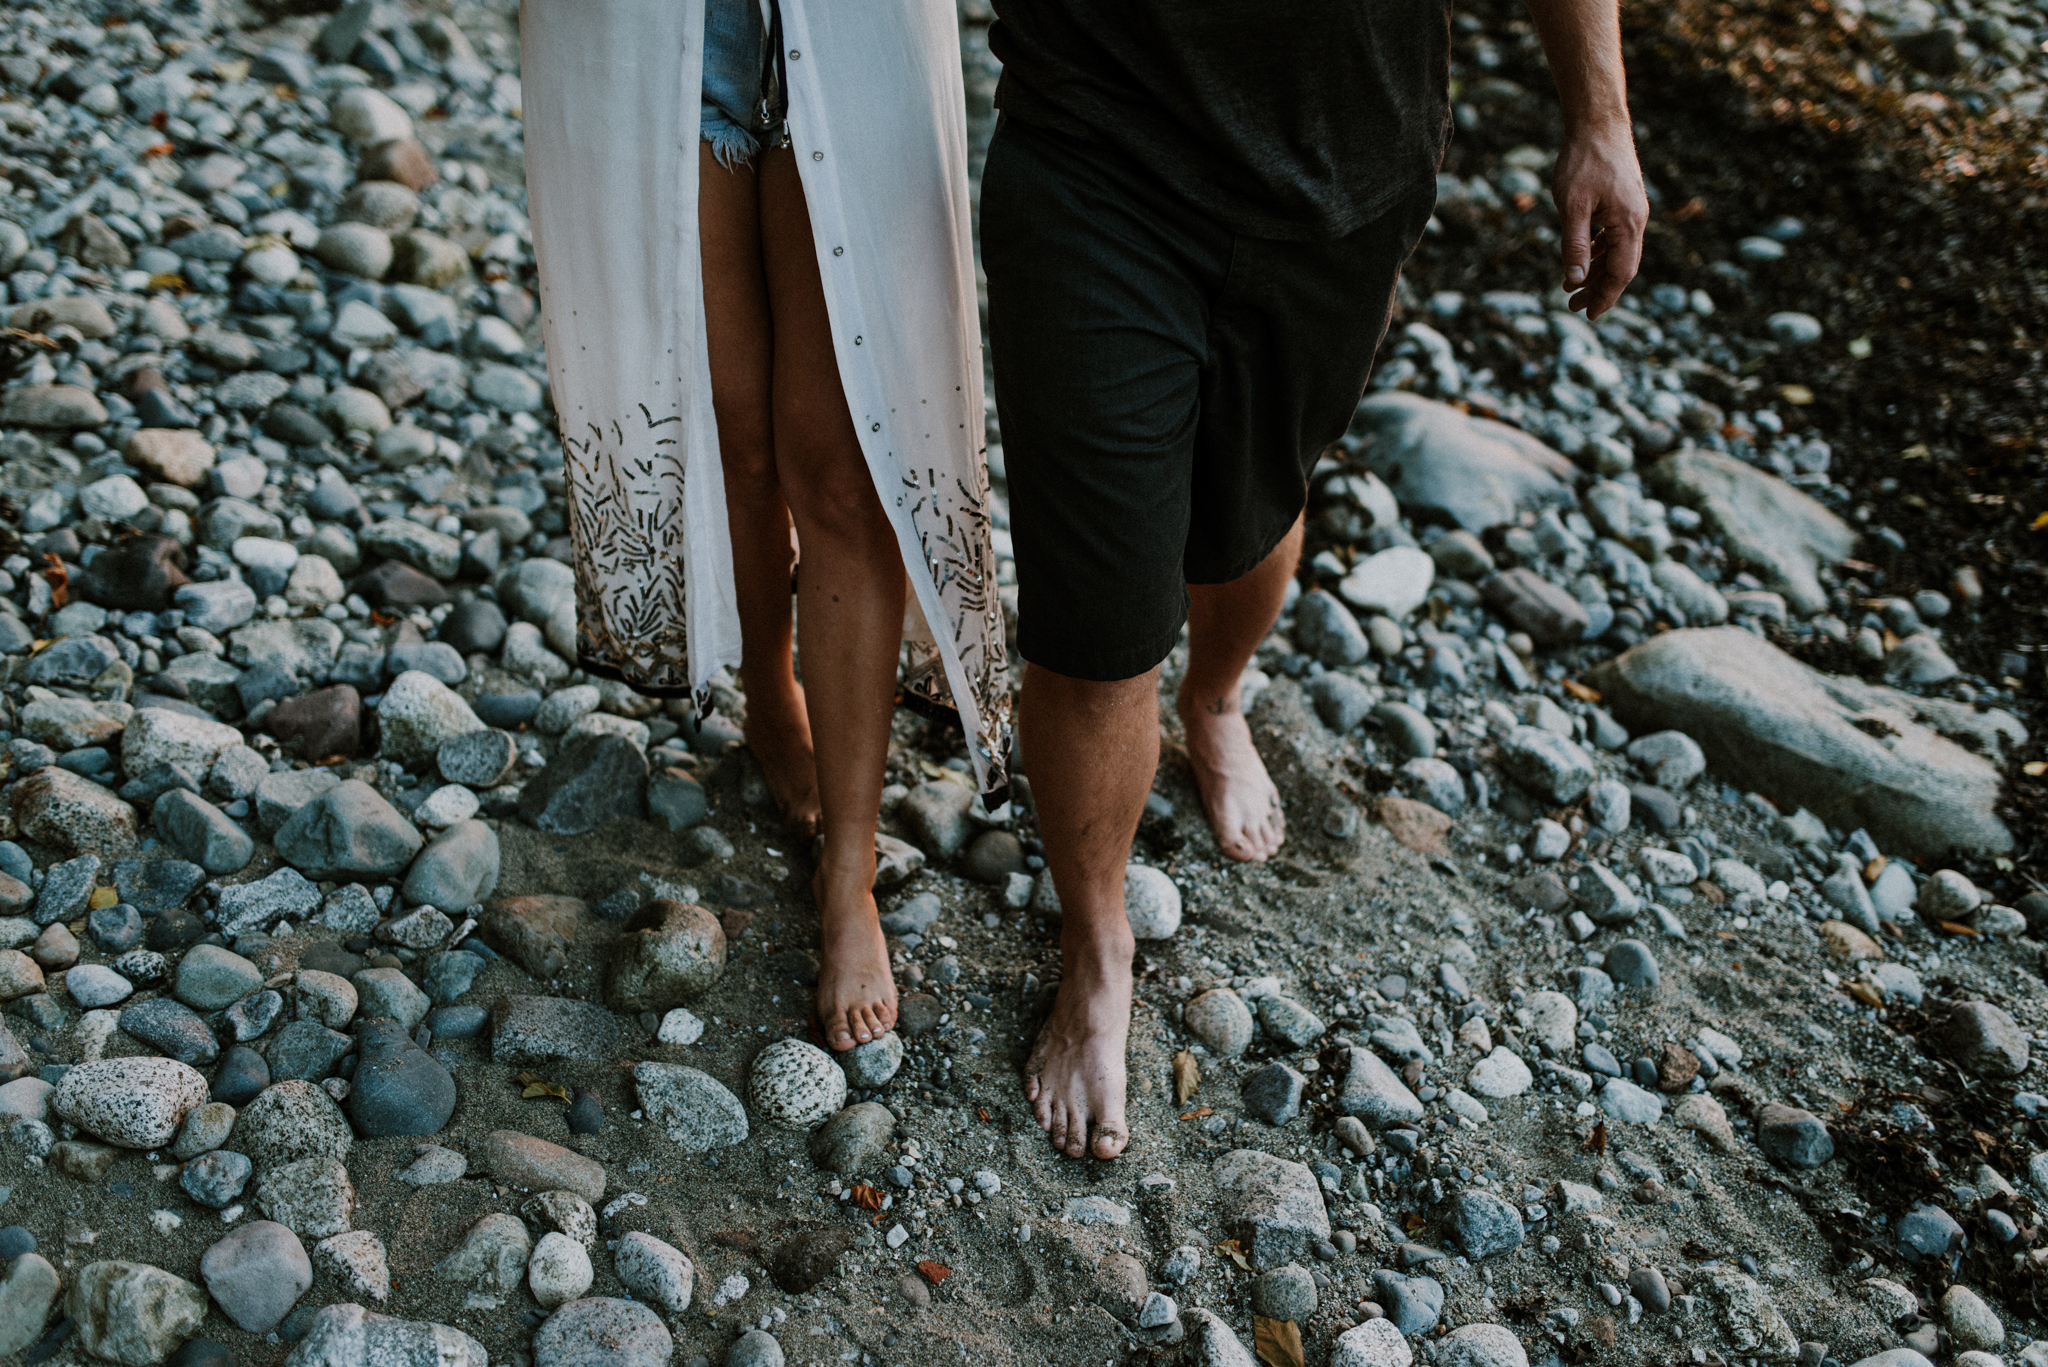 082_StacieCarrPhotography_vancouver-elopement-photographer-adventurous-engagement-smoke-bomb-beach.jpg